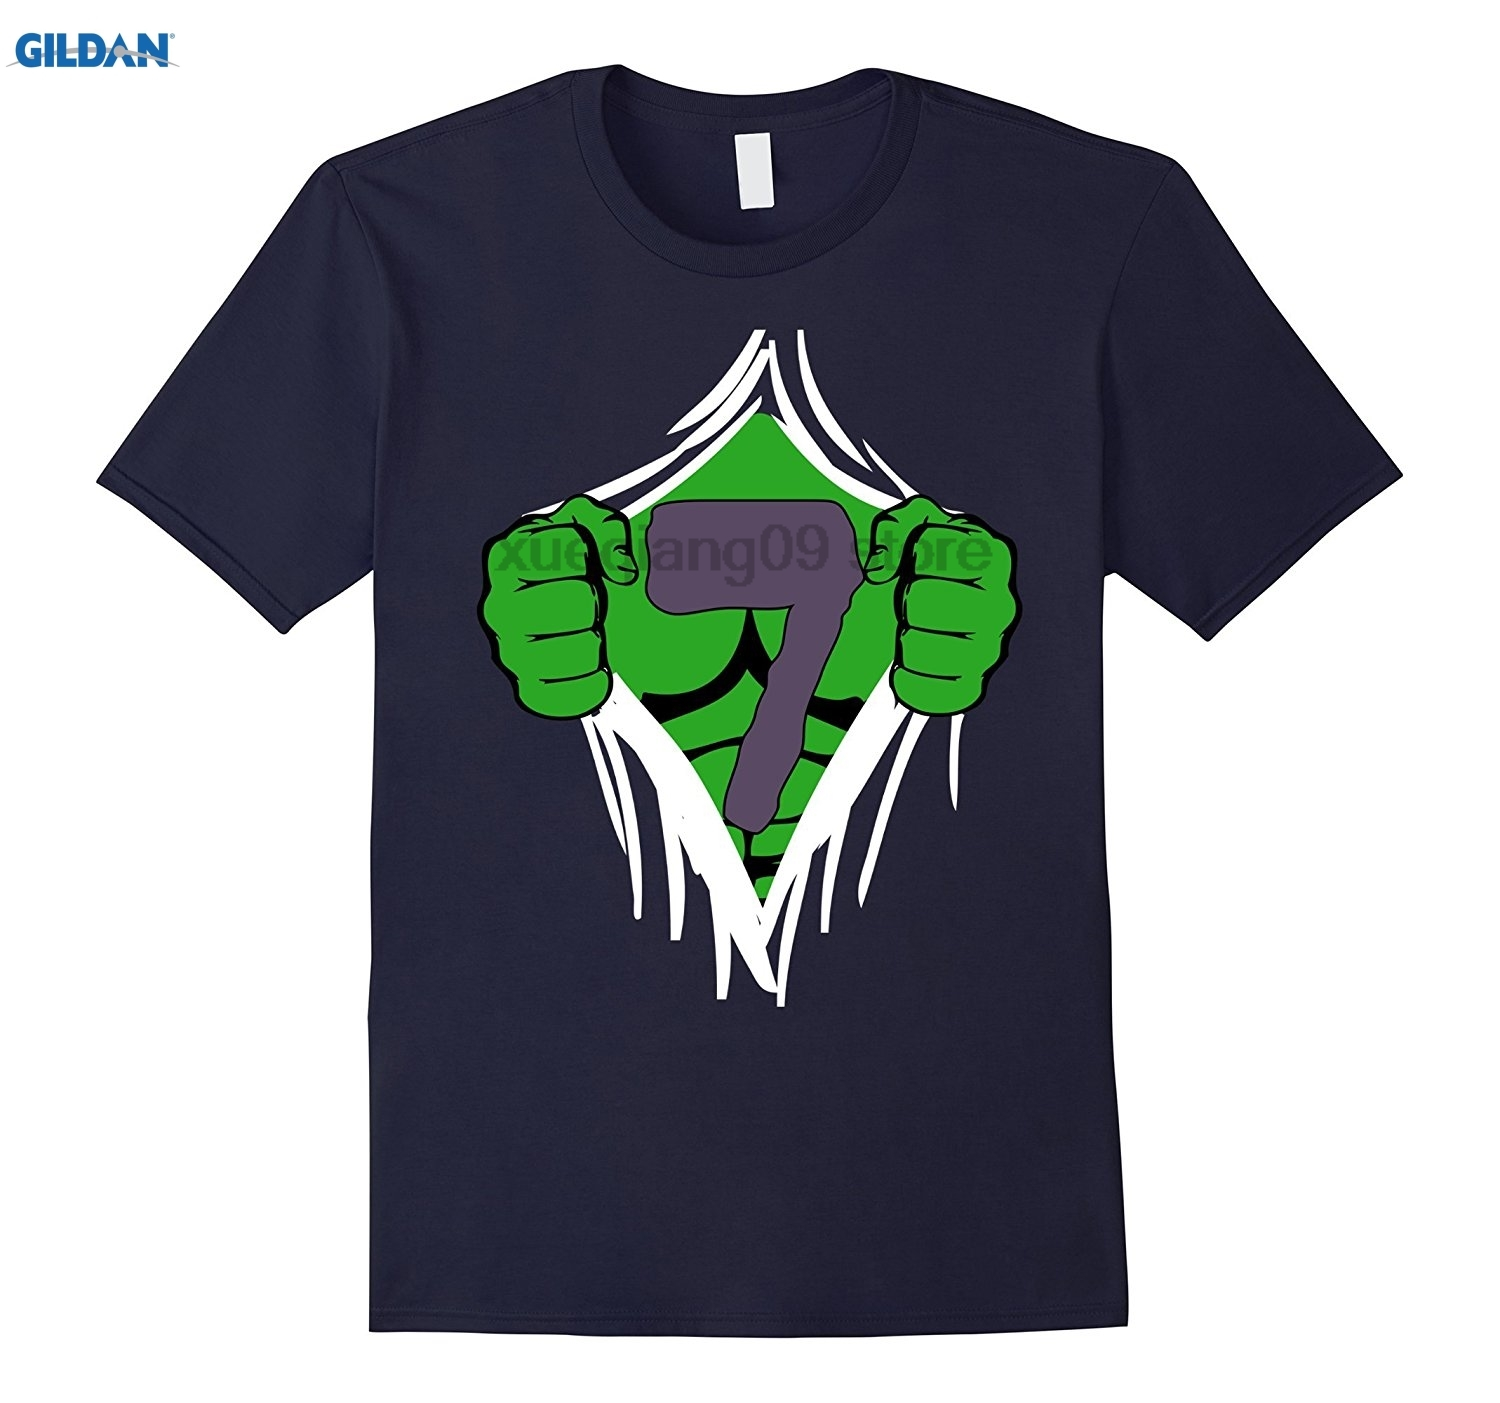 Detail Feedback Questions About GILDAN Green Man Chest Superhero Birthday Shirt For 7 Year Old Boys On Aliexpress